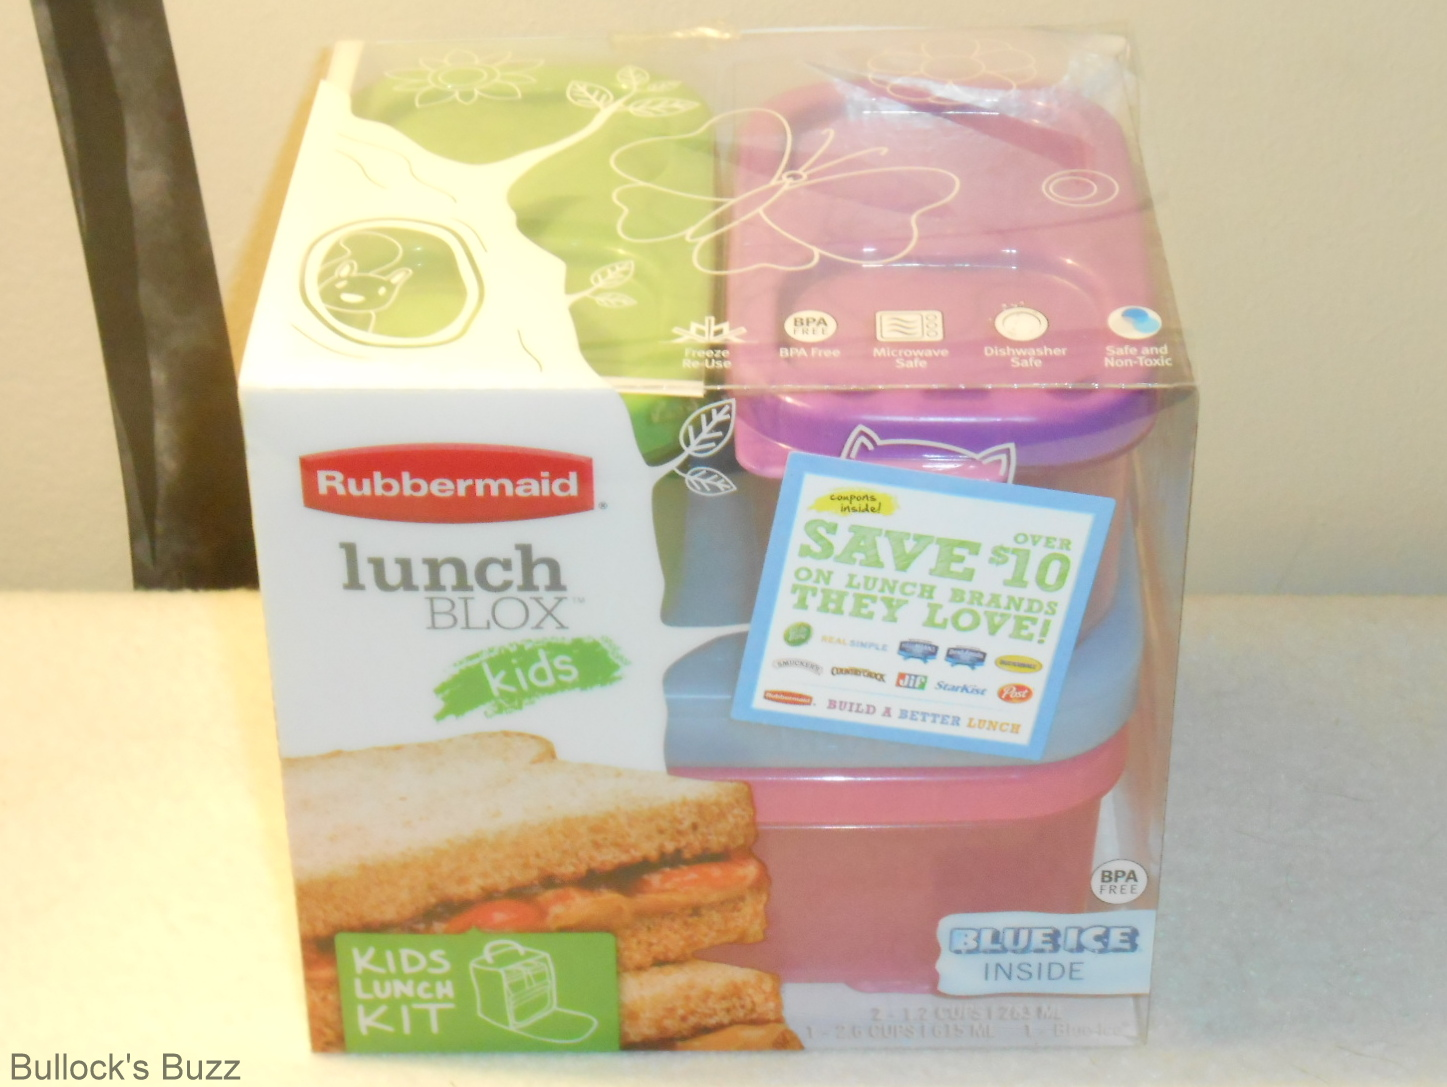 Rubbermaid LunchBlox Kids Review and Giveaway